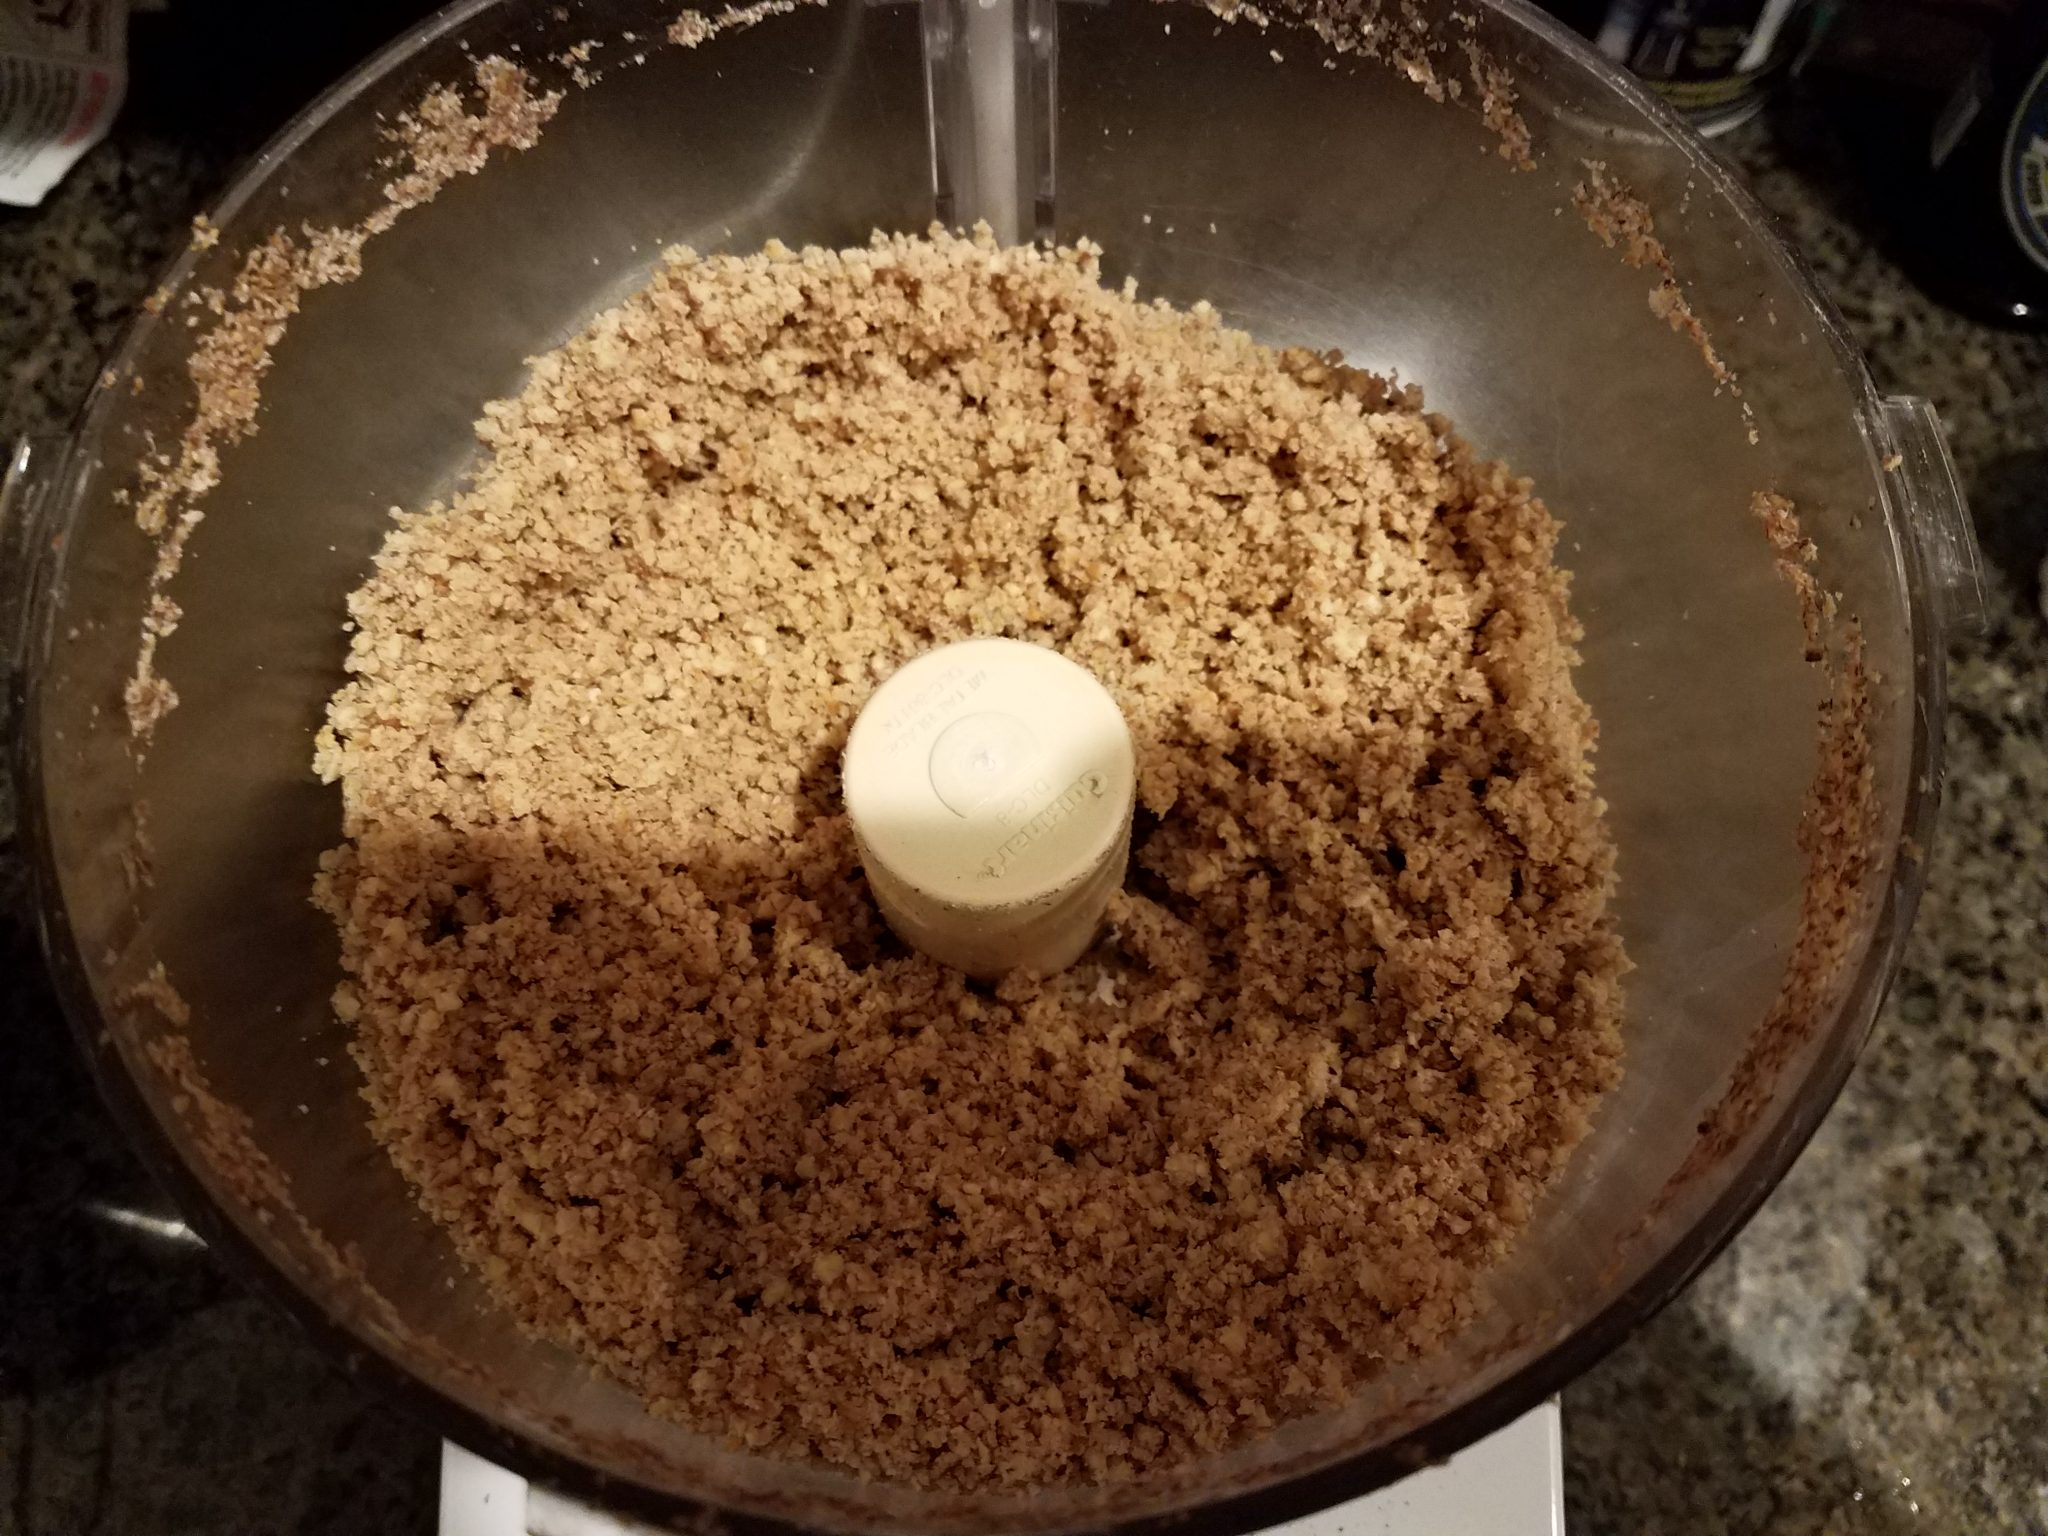 4 - Put the Tiger Nuts into the food processor and run it until they are finely chopped into very small pieces